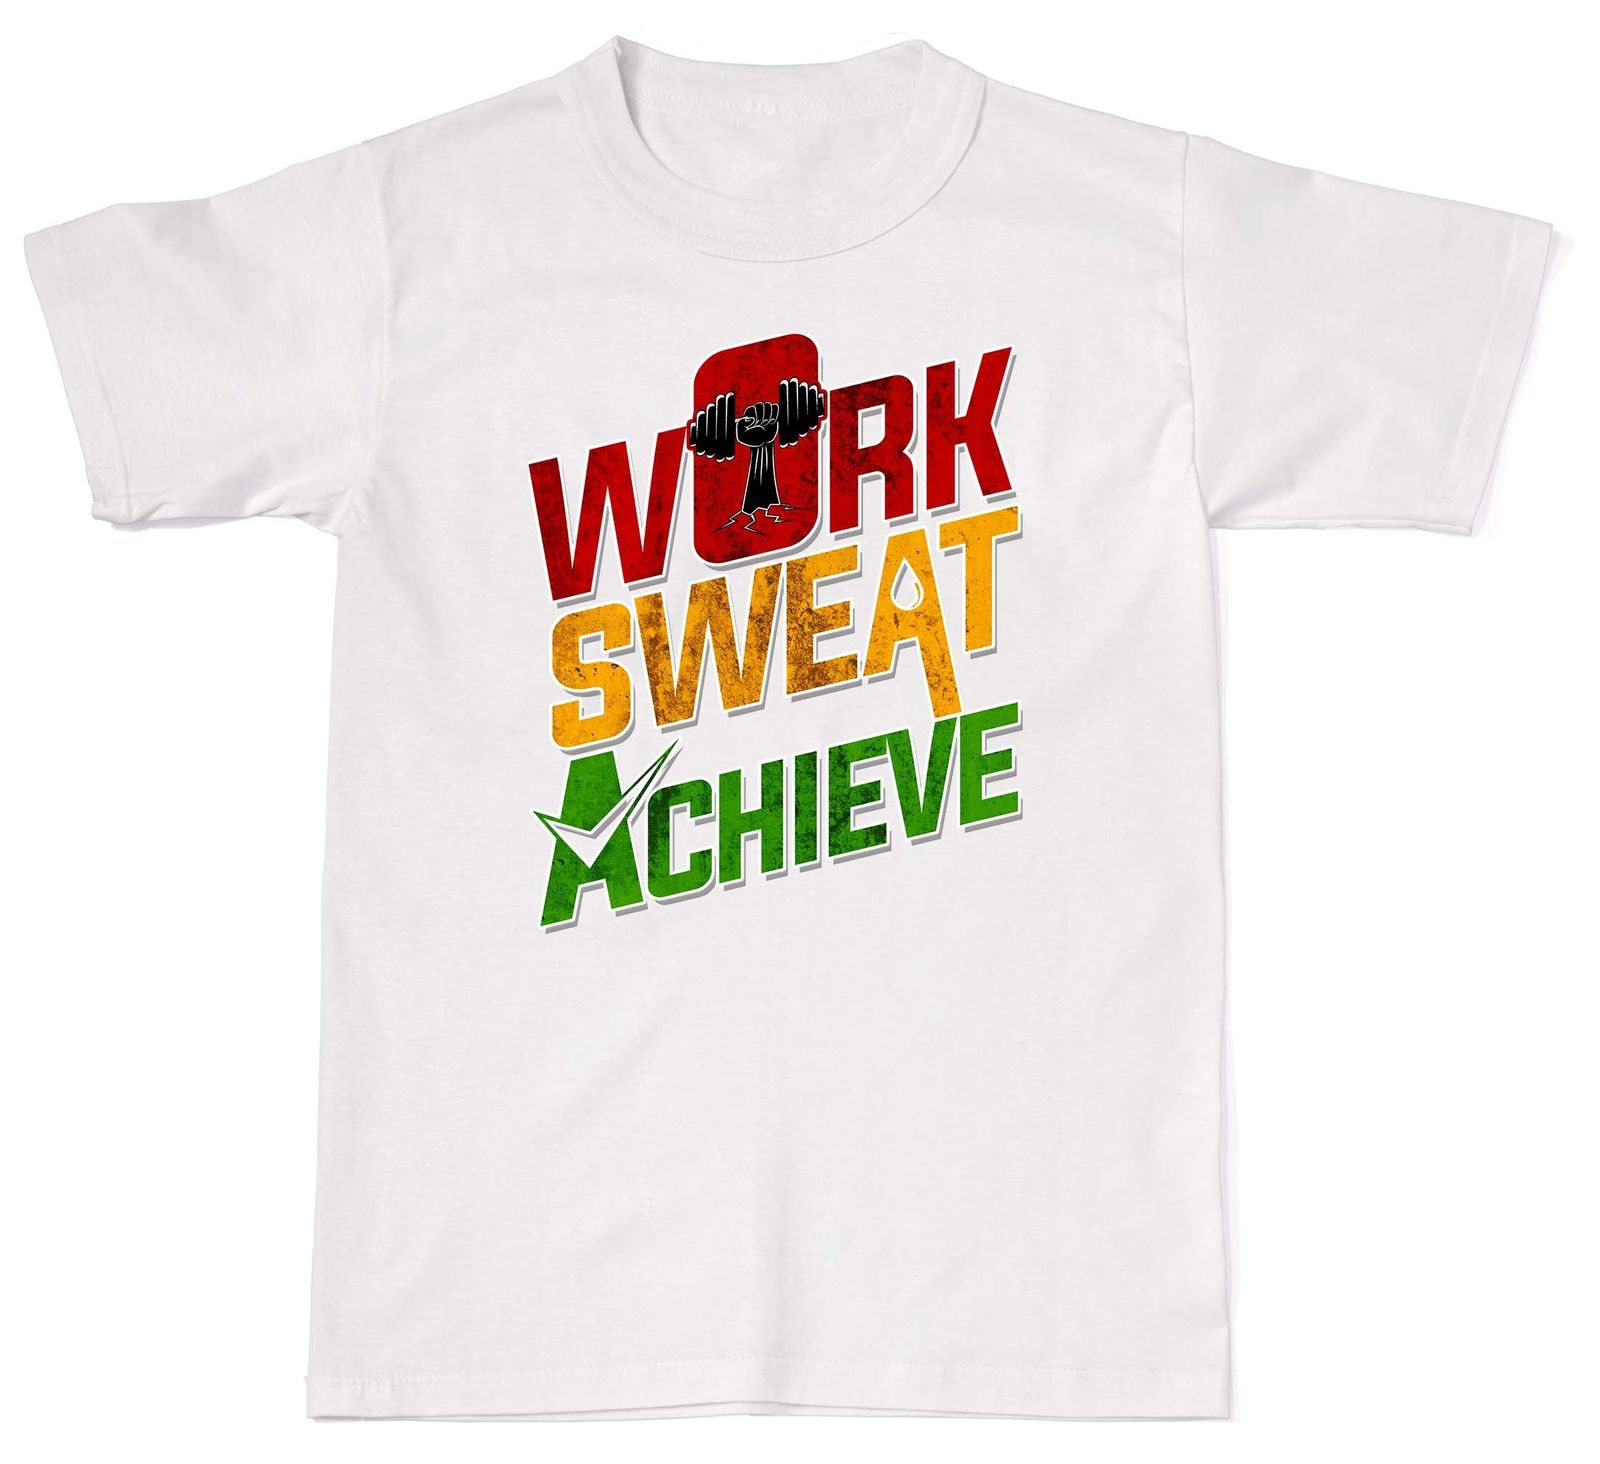 Design T Shirts Casual Cool Work Sweat Achieve Gym Work Out Exercise Cotton T Shirt T-Shirt